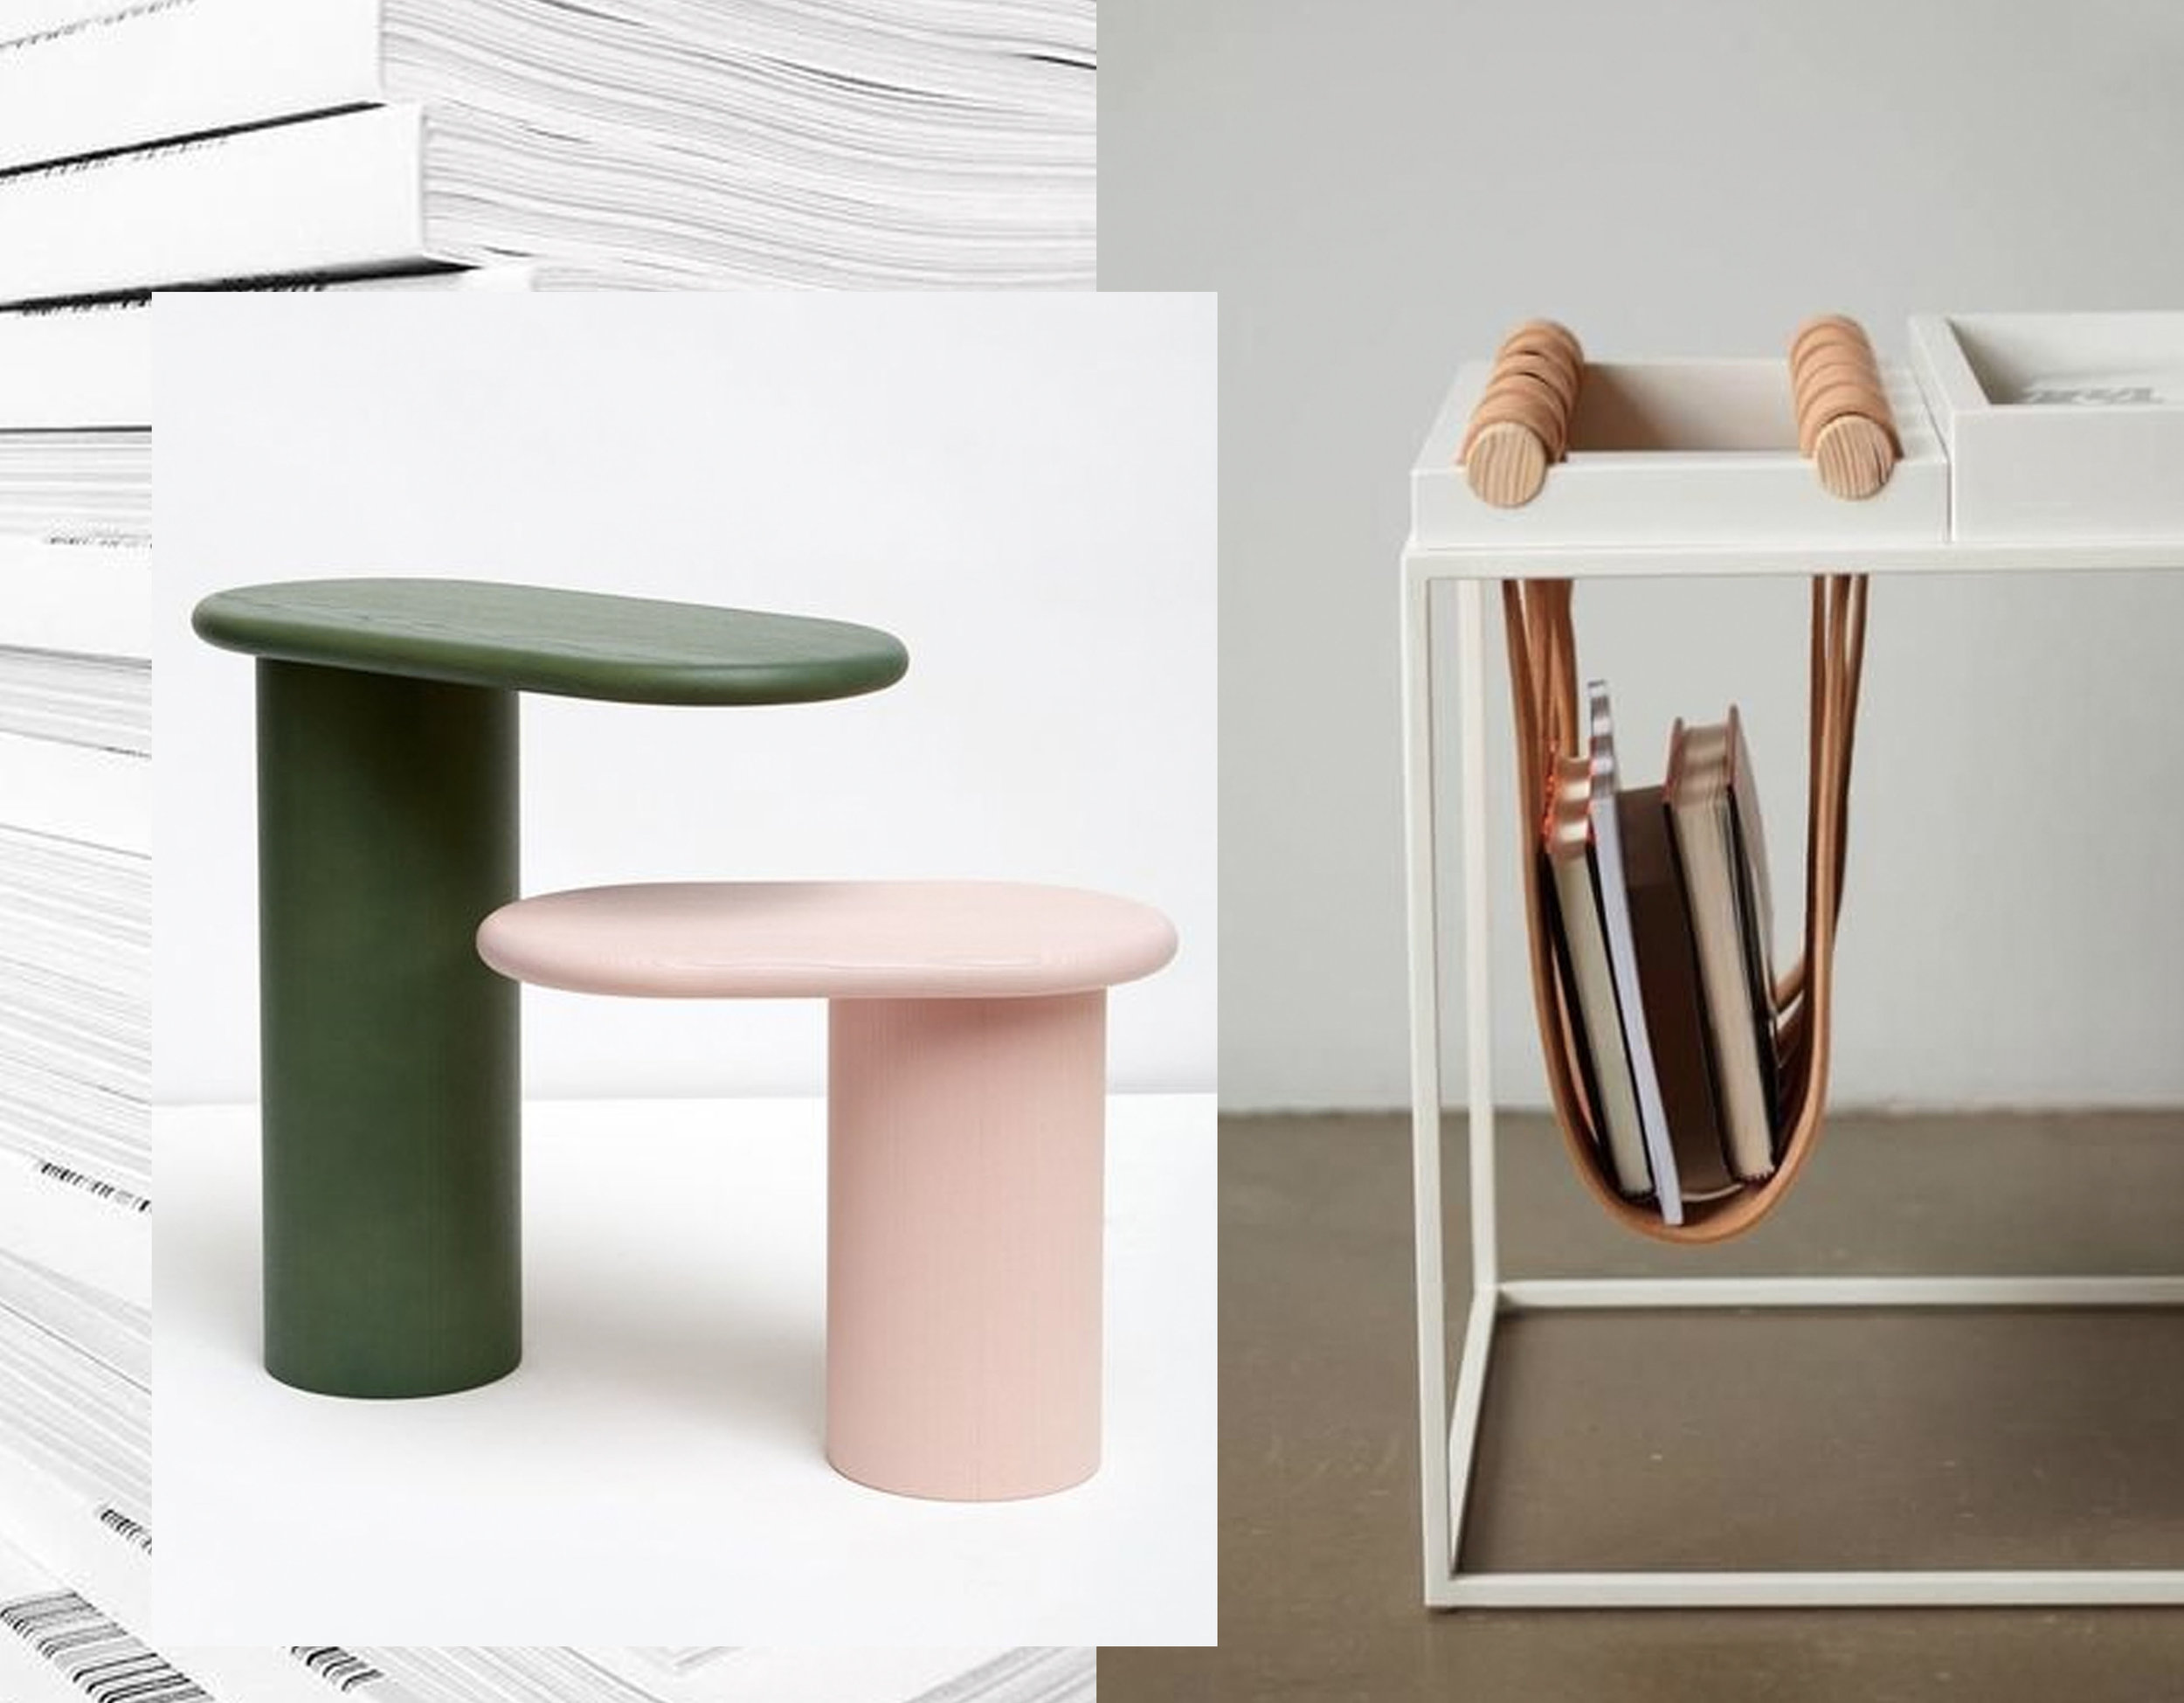 pile of magazines via   Instagram   - Cantilever side tables Monologue  - small table via  Dezignsavvy